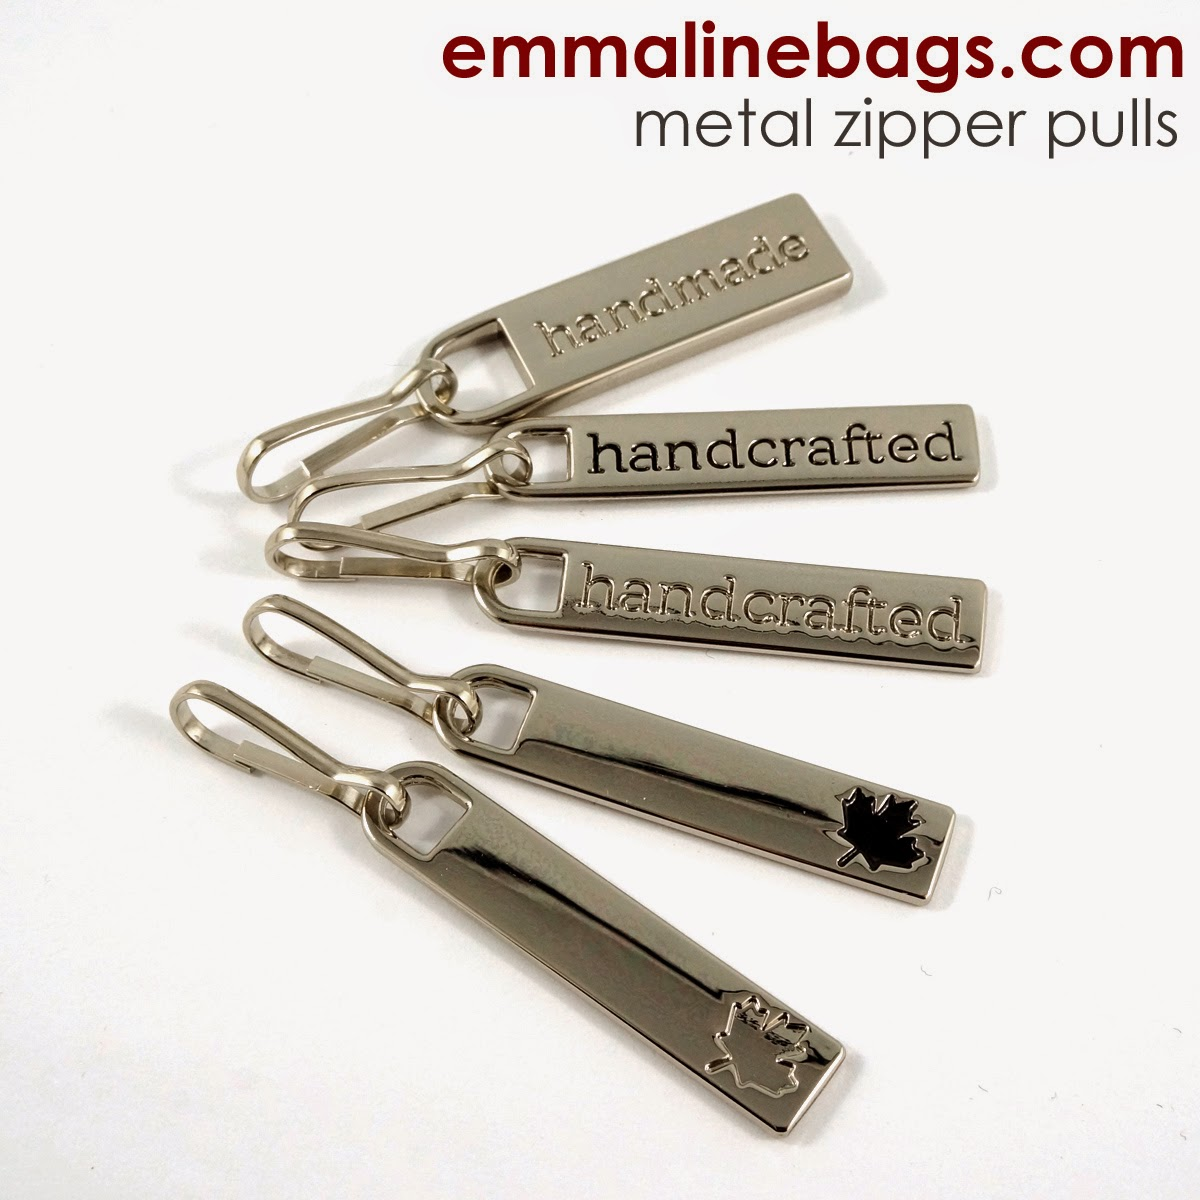 Metal zipper pulls for bags and purses.